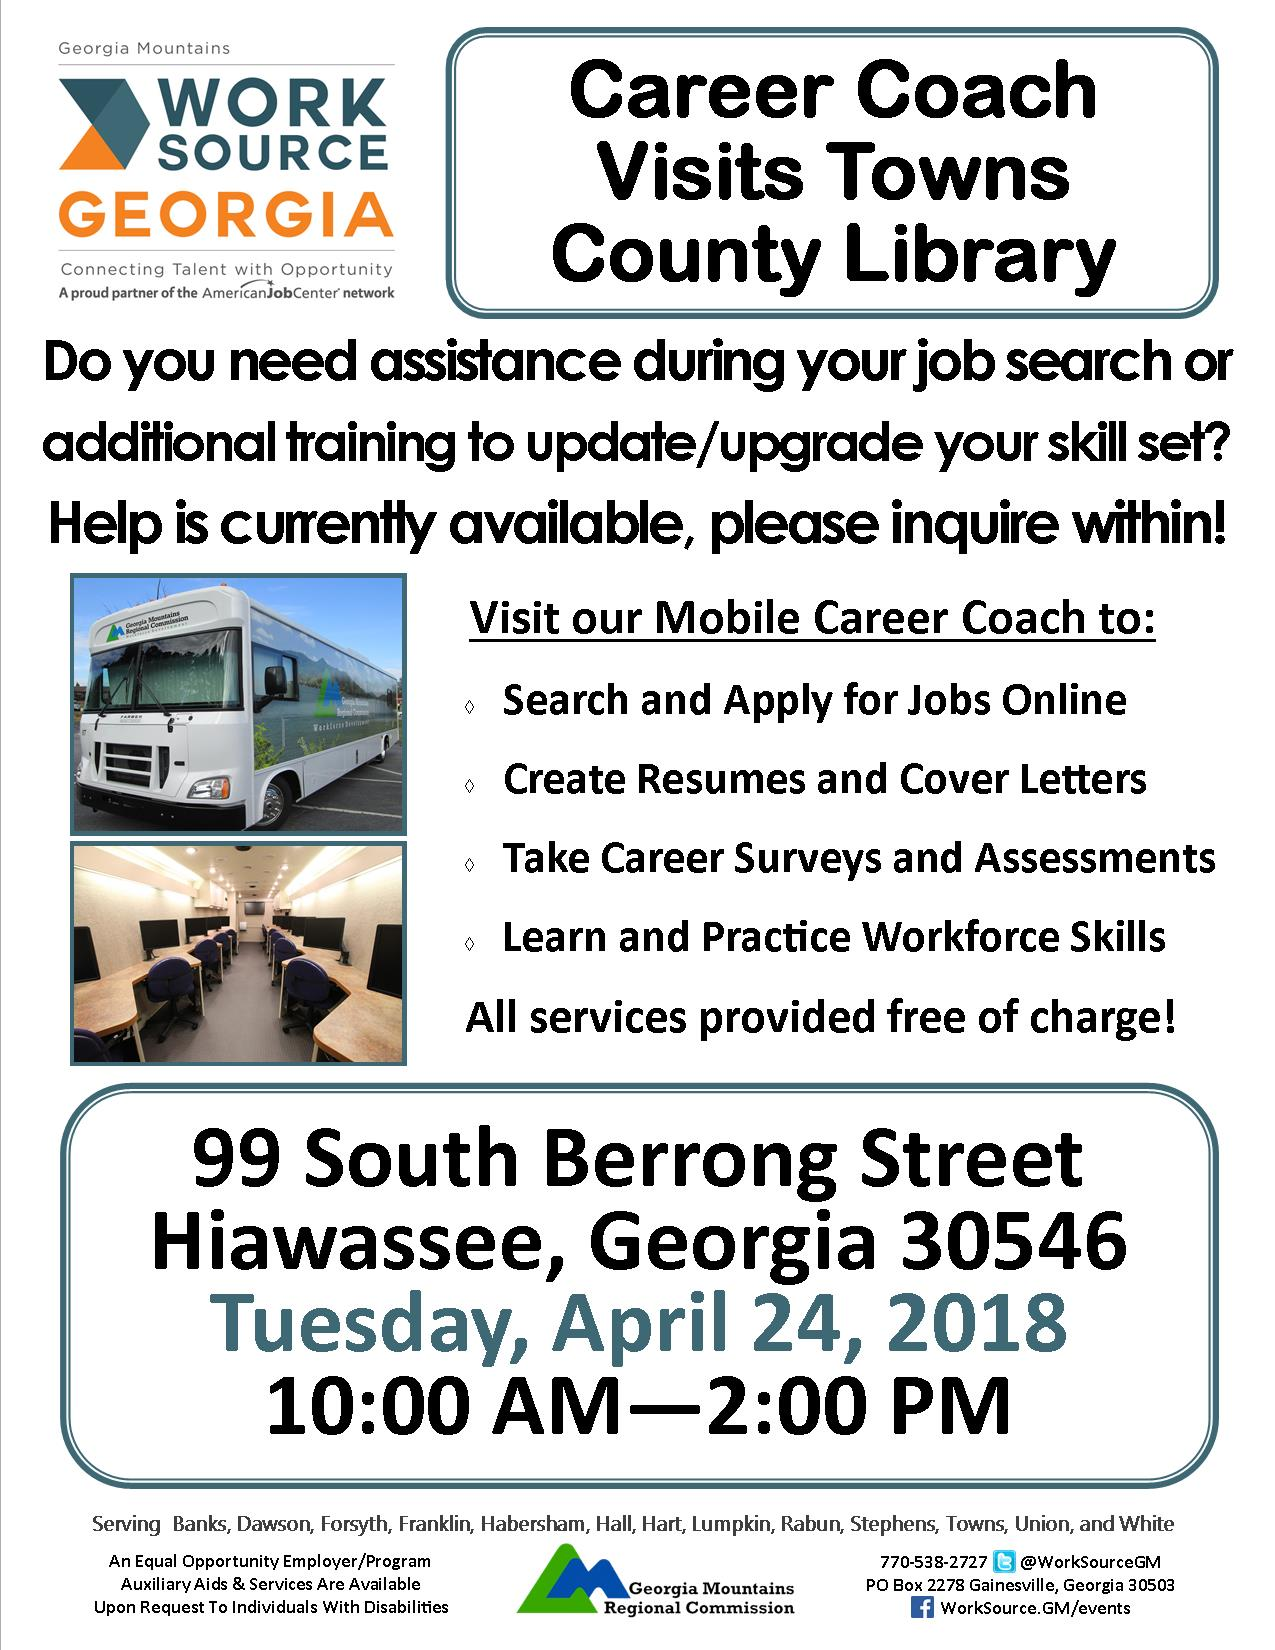 Career Coach Visits Towns County Library